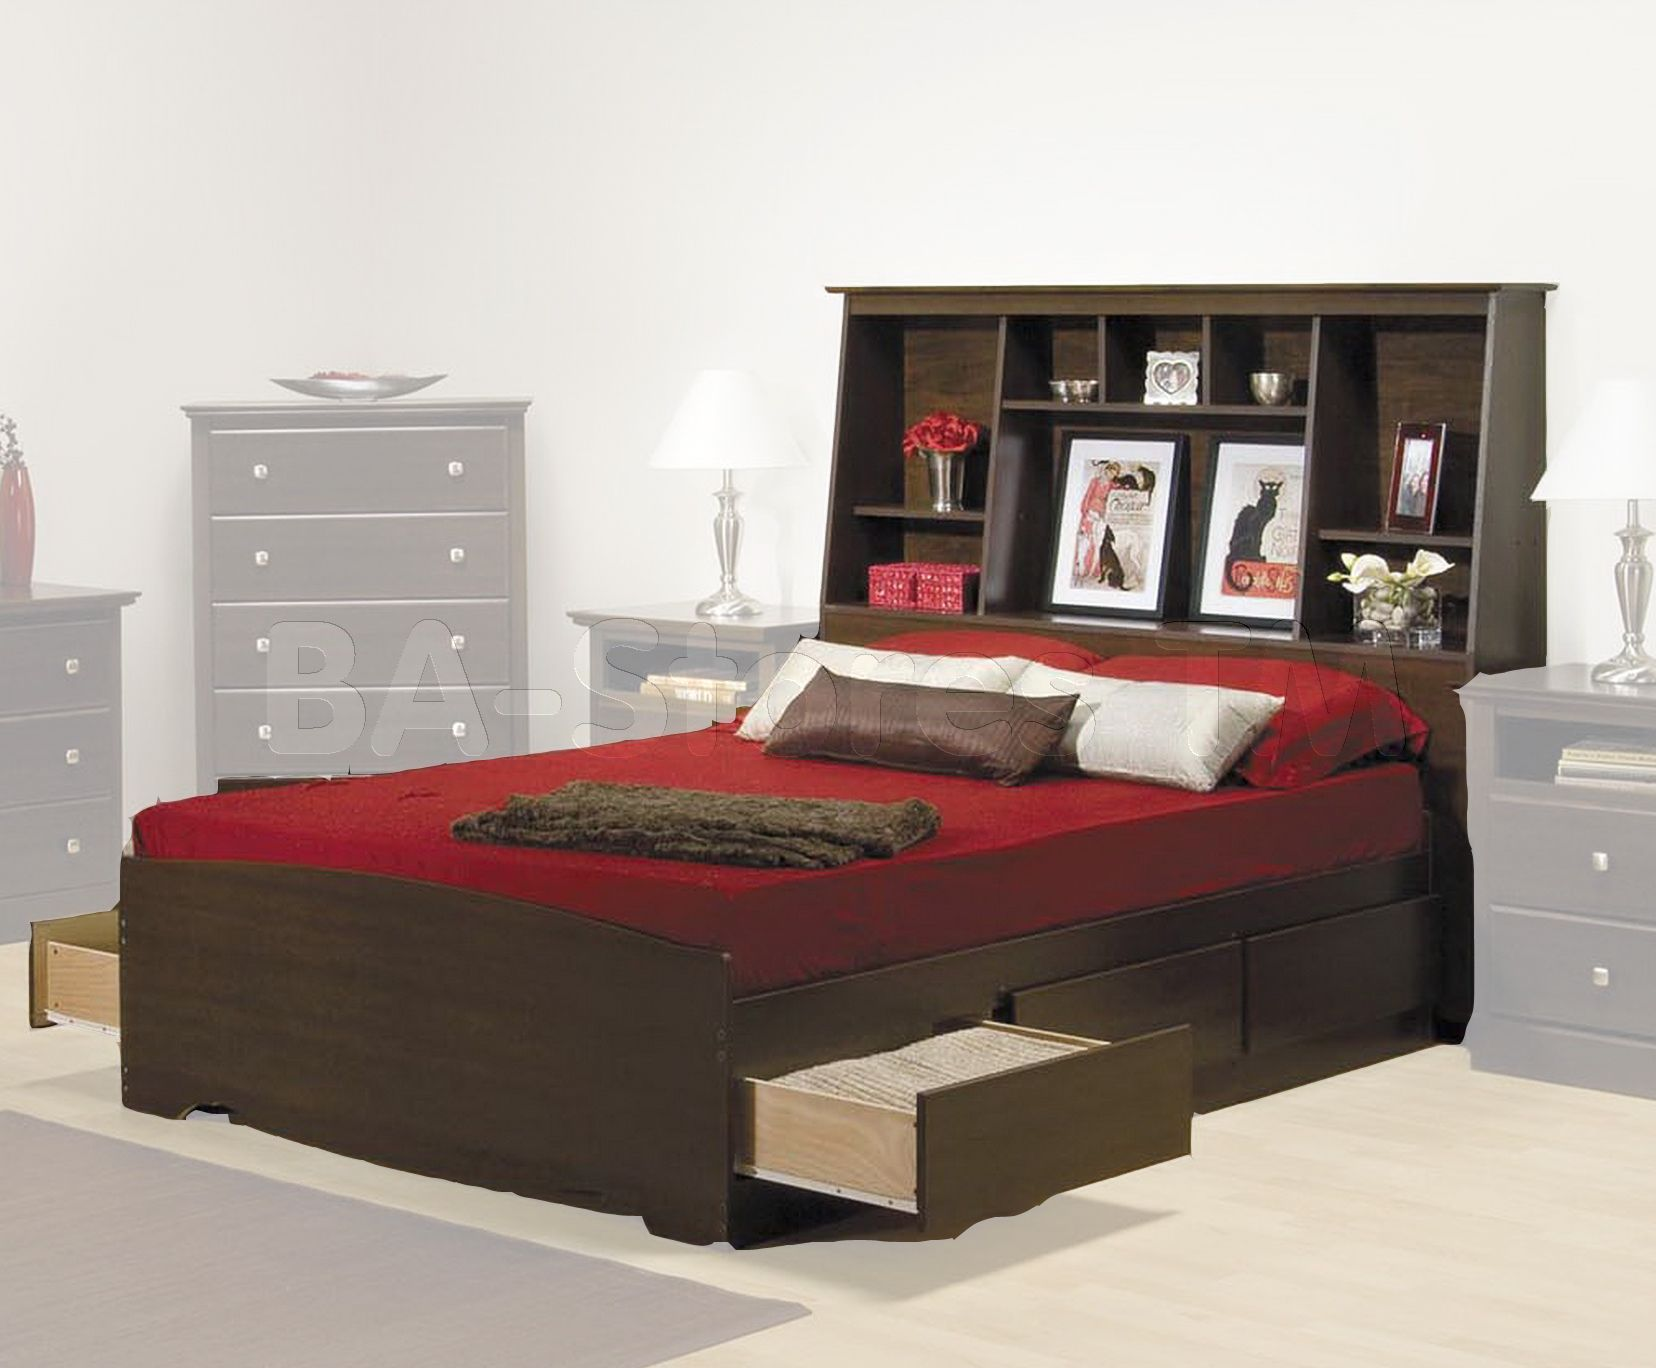 Prepac fremont platform storage bed with bookcase for Bookshelf bed headboard